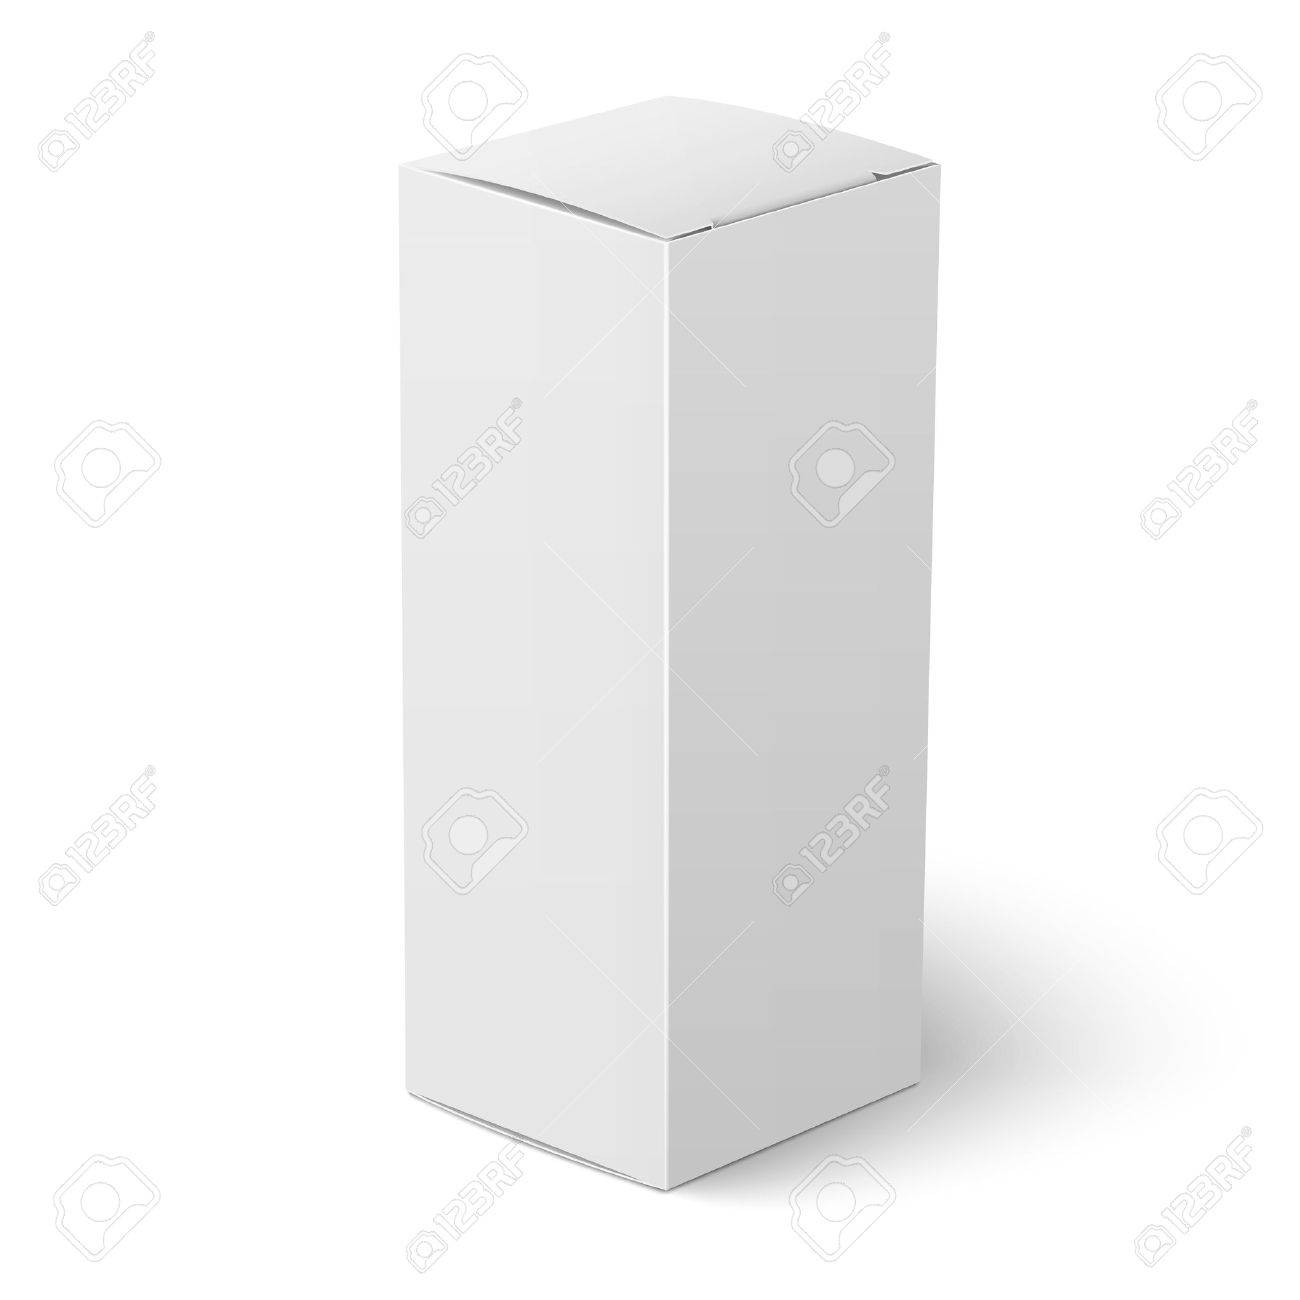 Blank Vertical Paper Or Cardboard Box Template Standing On White ...